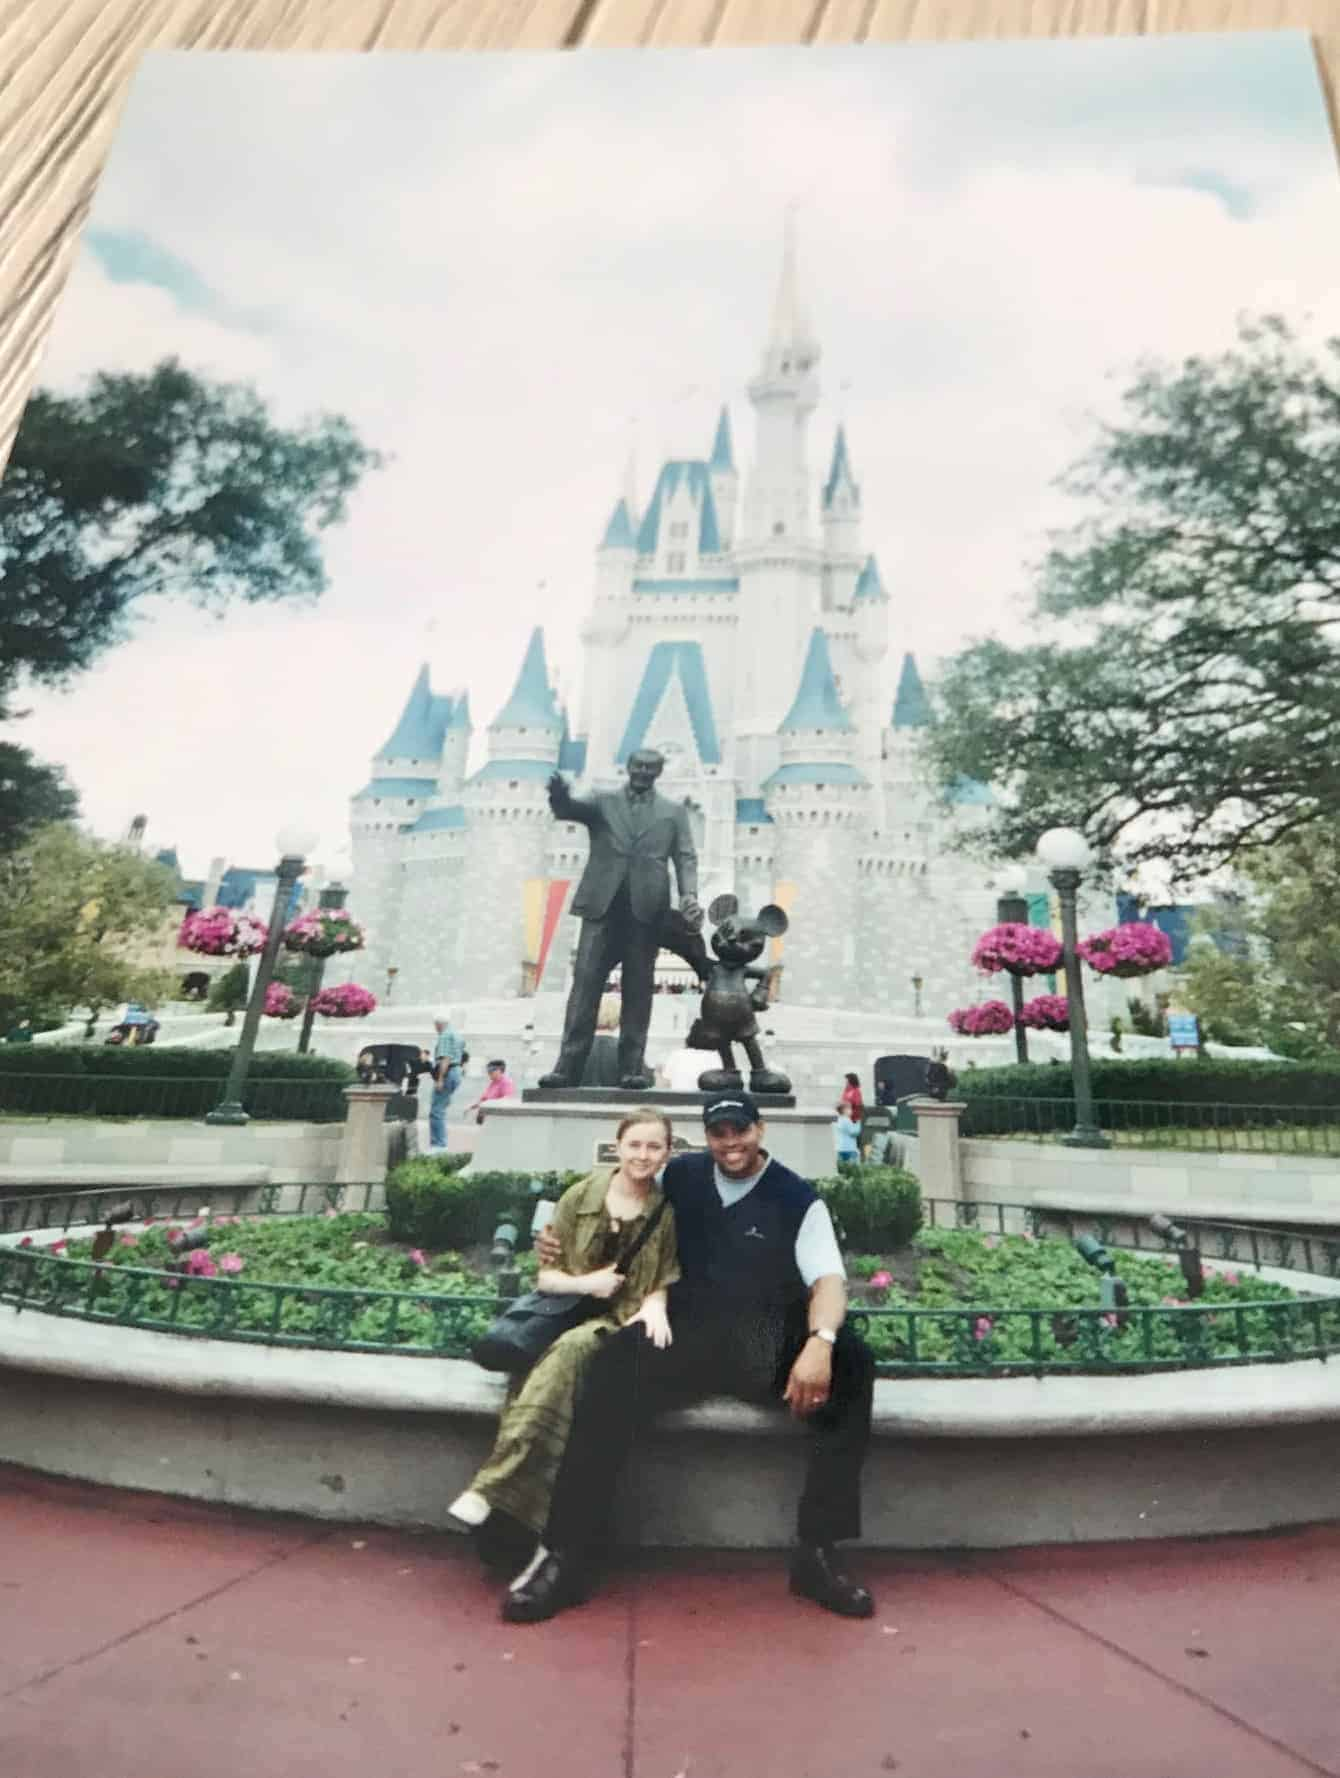 Us at disney world in 2001